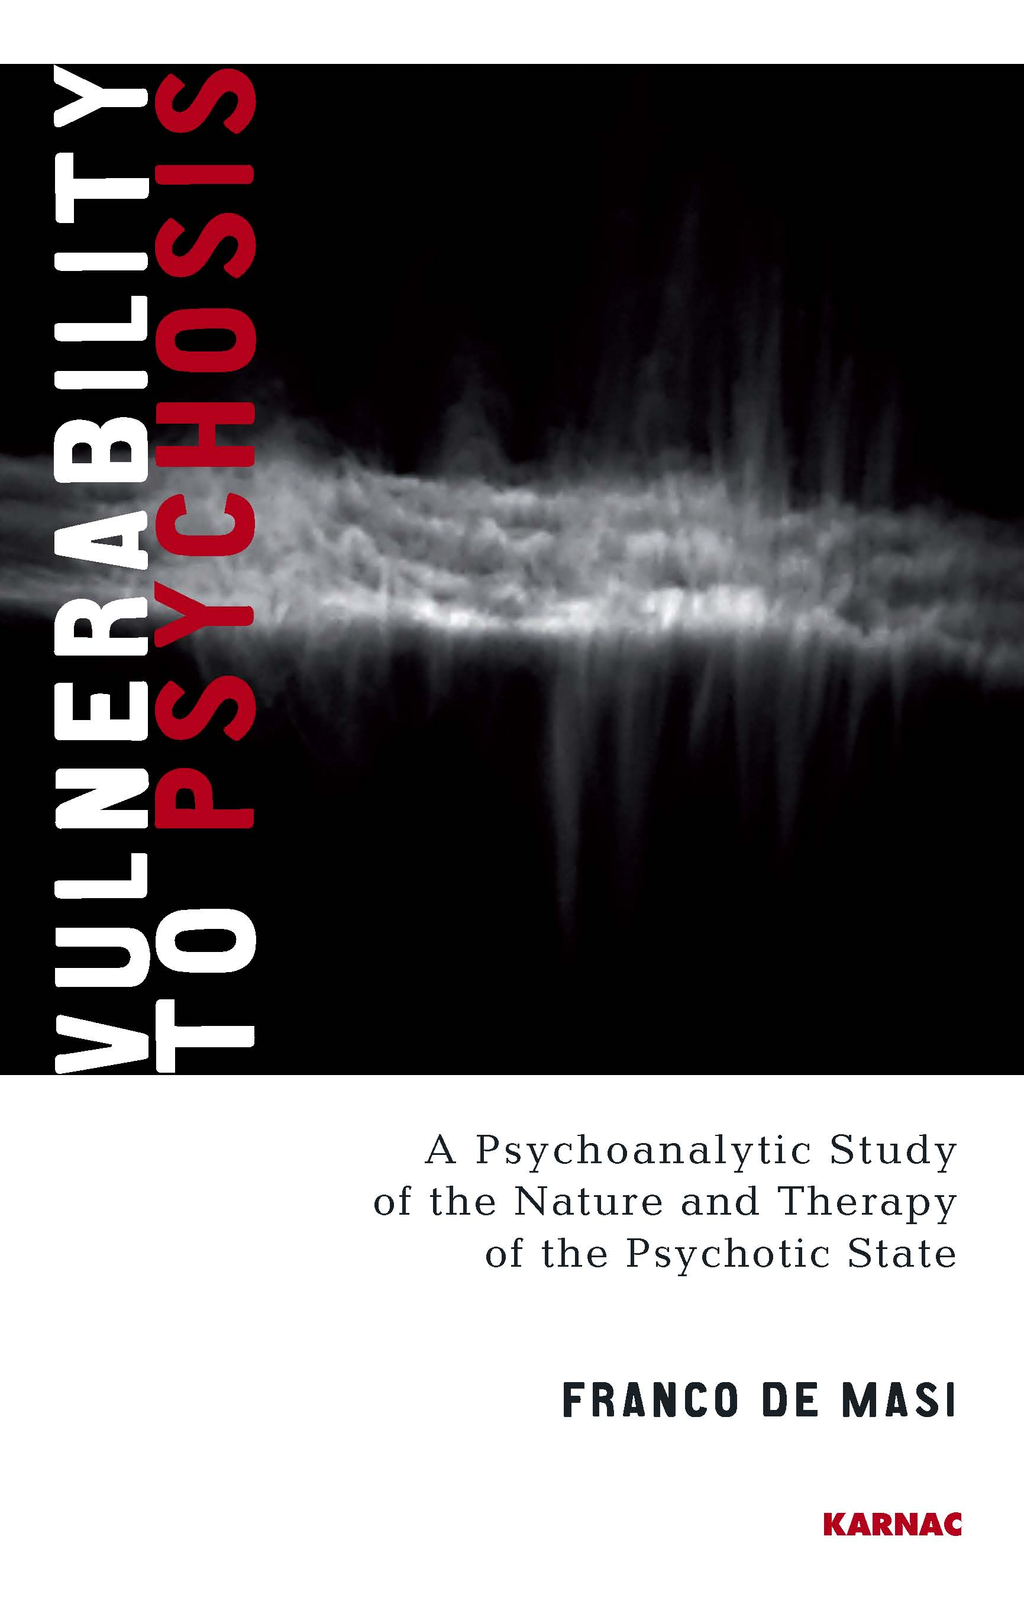 Vulnerability to Psychosis: A Psychoanalytic Study of the Nature and Therapy of the Psychotic State